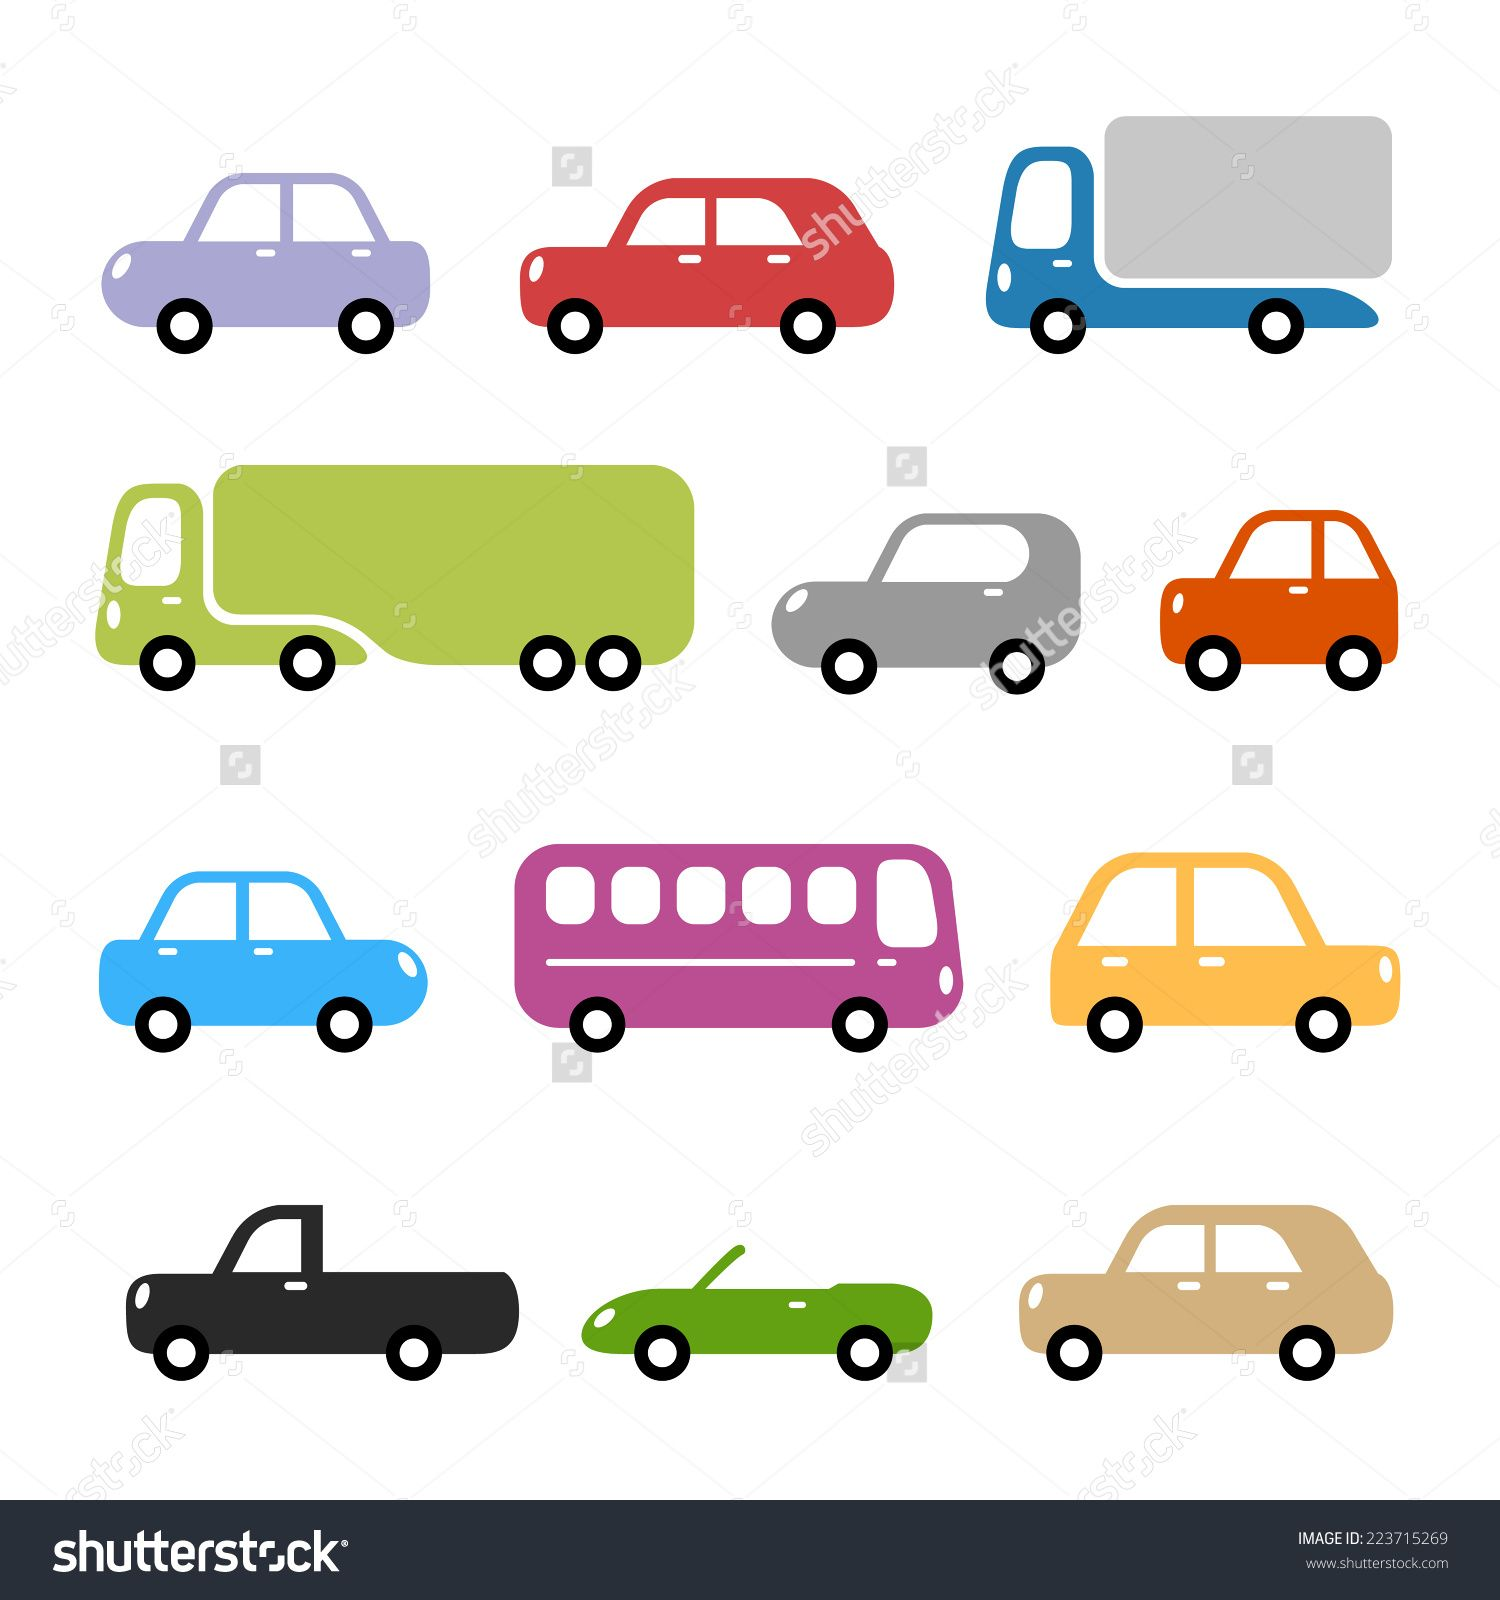 stock vector cars illustration different car types in simple rounded